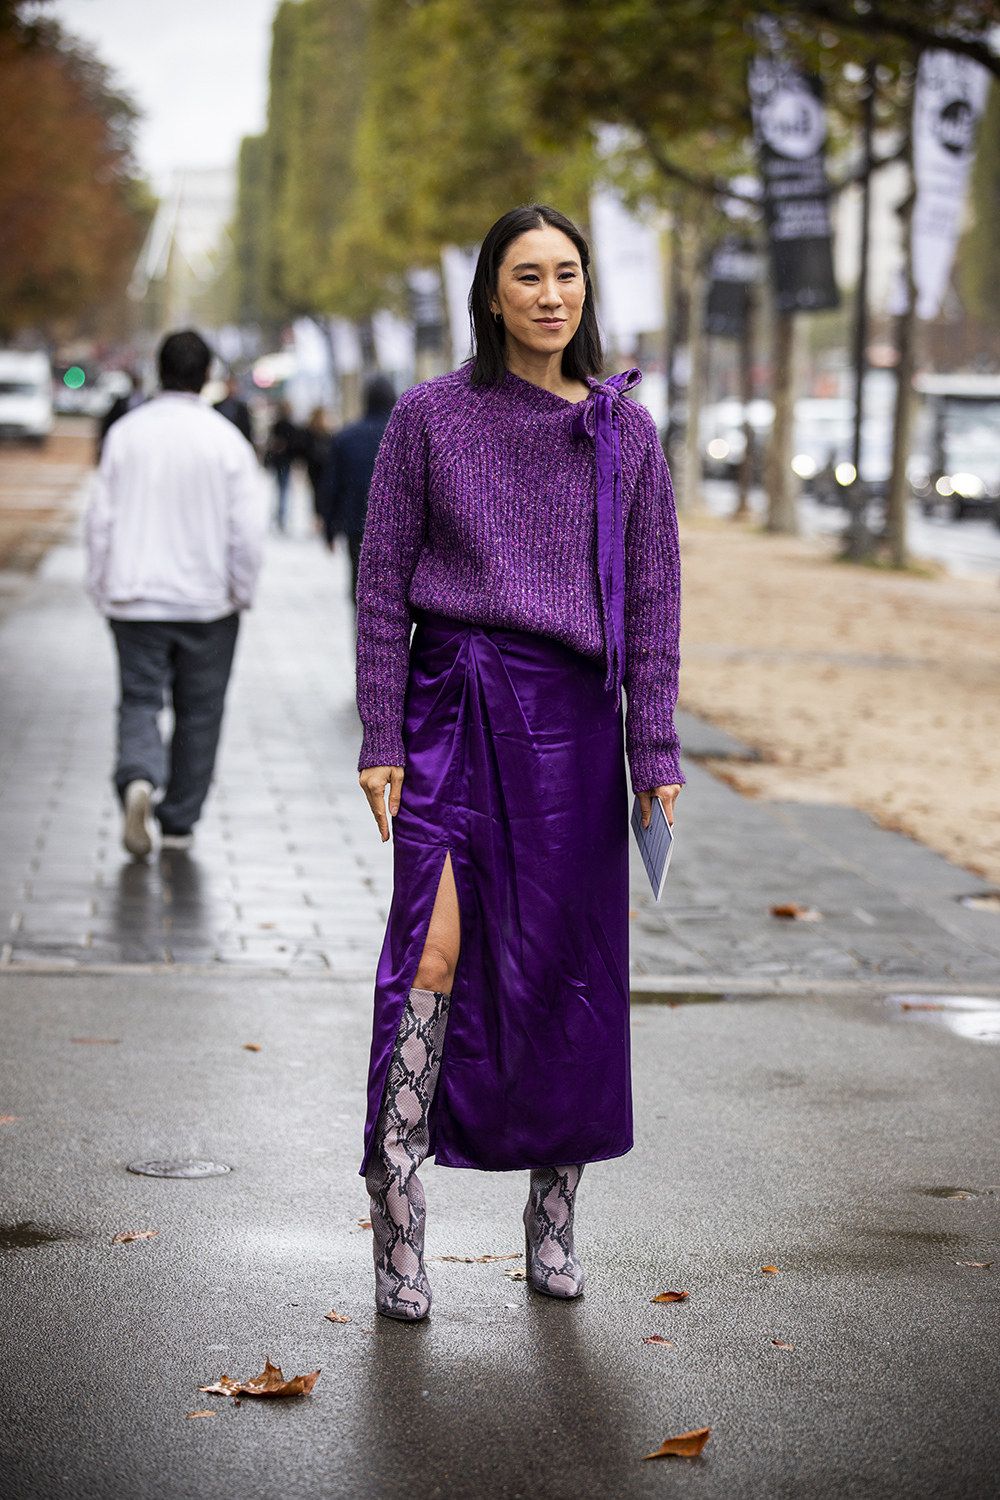 PARIS, FRANCE - OCTOBER 01: Eva Chen, wearing a purple sweater, purple skirt and snake print boots, is seen outside the Chanel show during Paris Fashion Week - Womenswear Spring Summer 2020 on October 01, 2019 in Paris, France. (Photo by Claudio Lavenia/Getty Images)